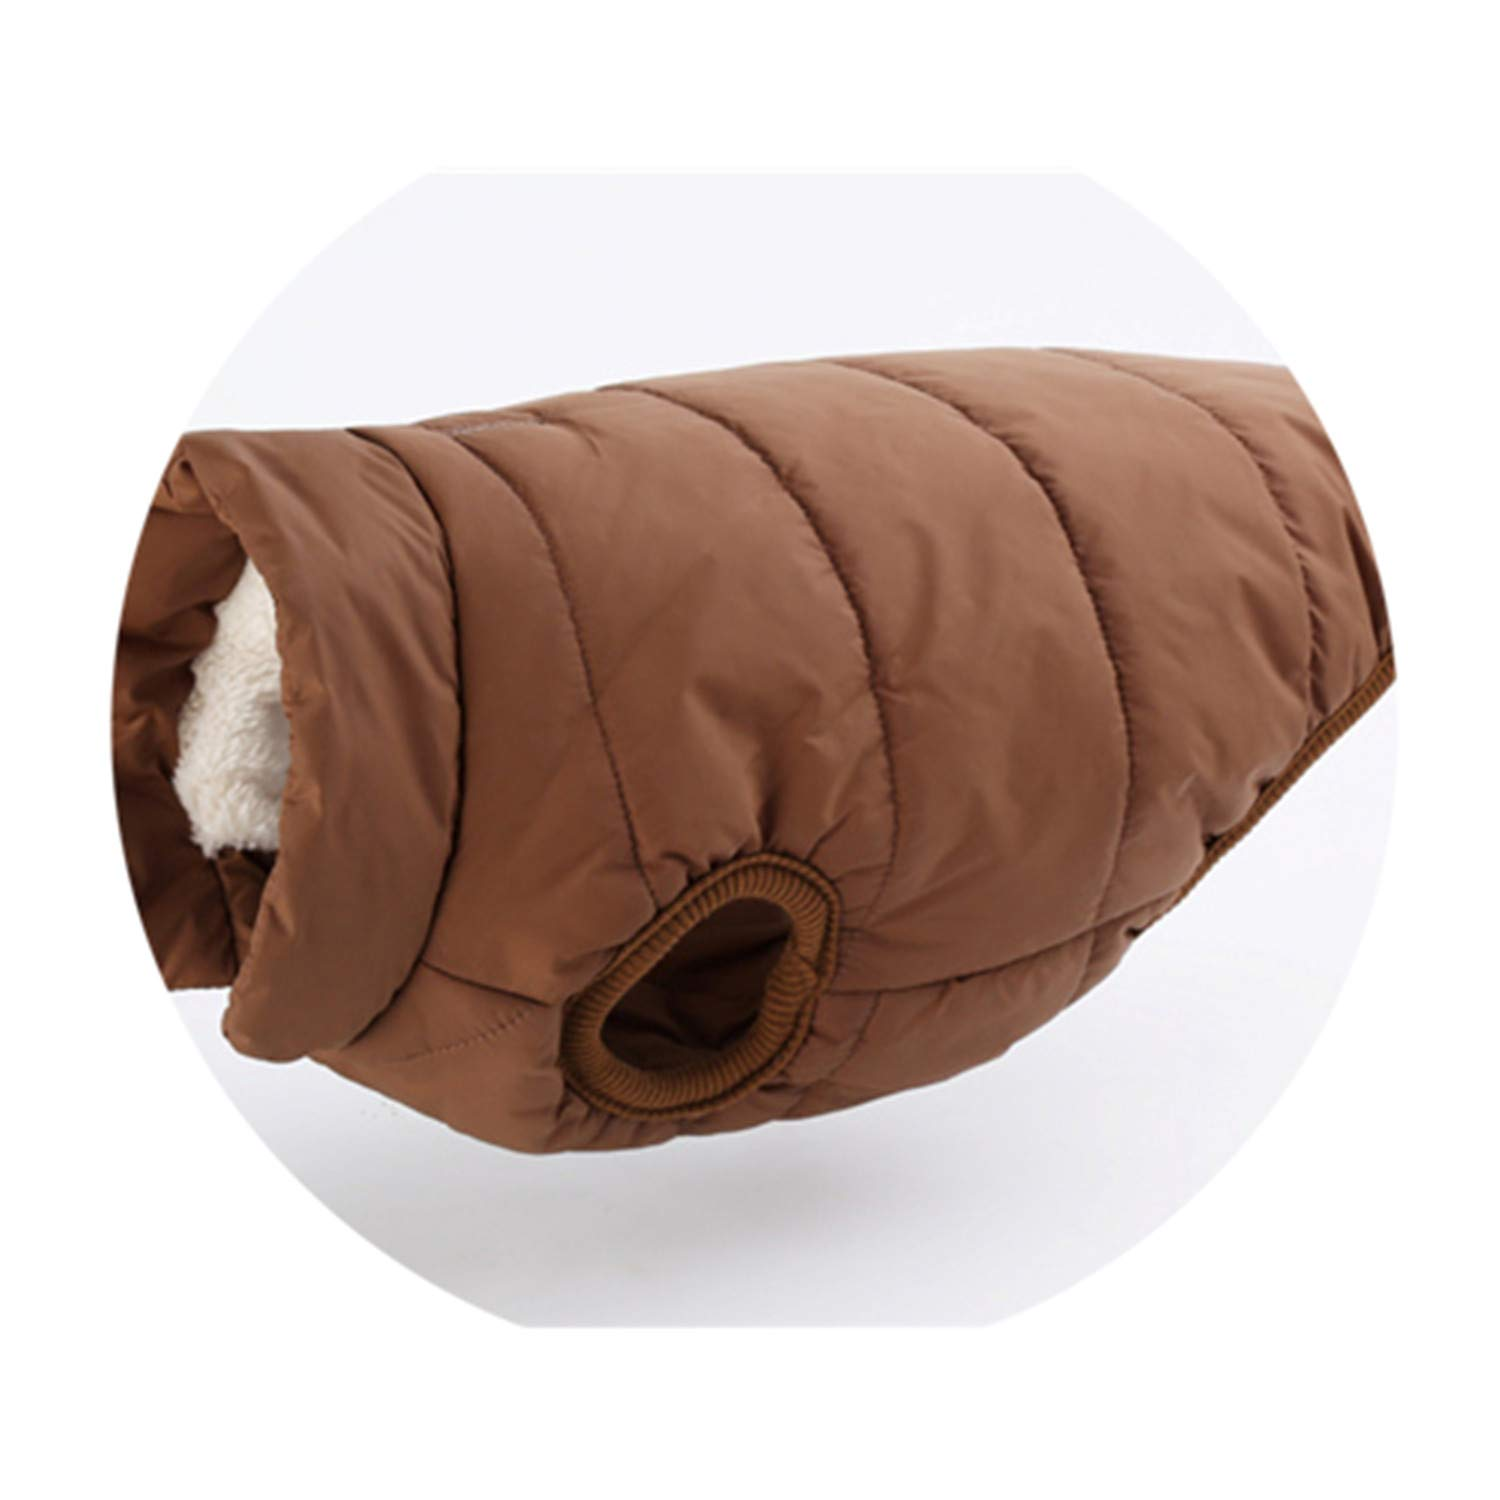 Coffee XXXL coffee XXXL Pet Dog Vest Jacket Clothing Autumn Winter Windproof Dog Clothes Warm Coat for Small Large Dogs French Bu